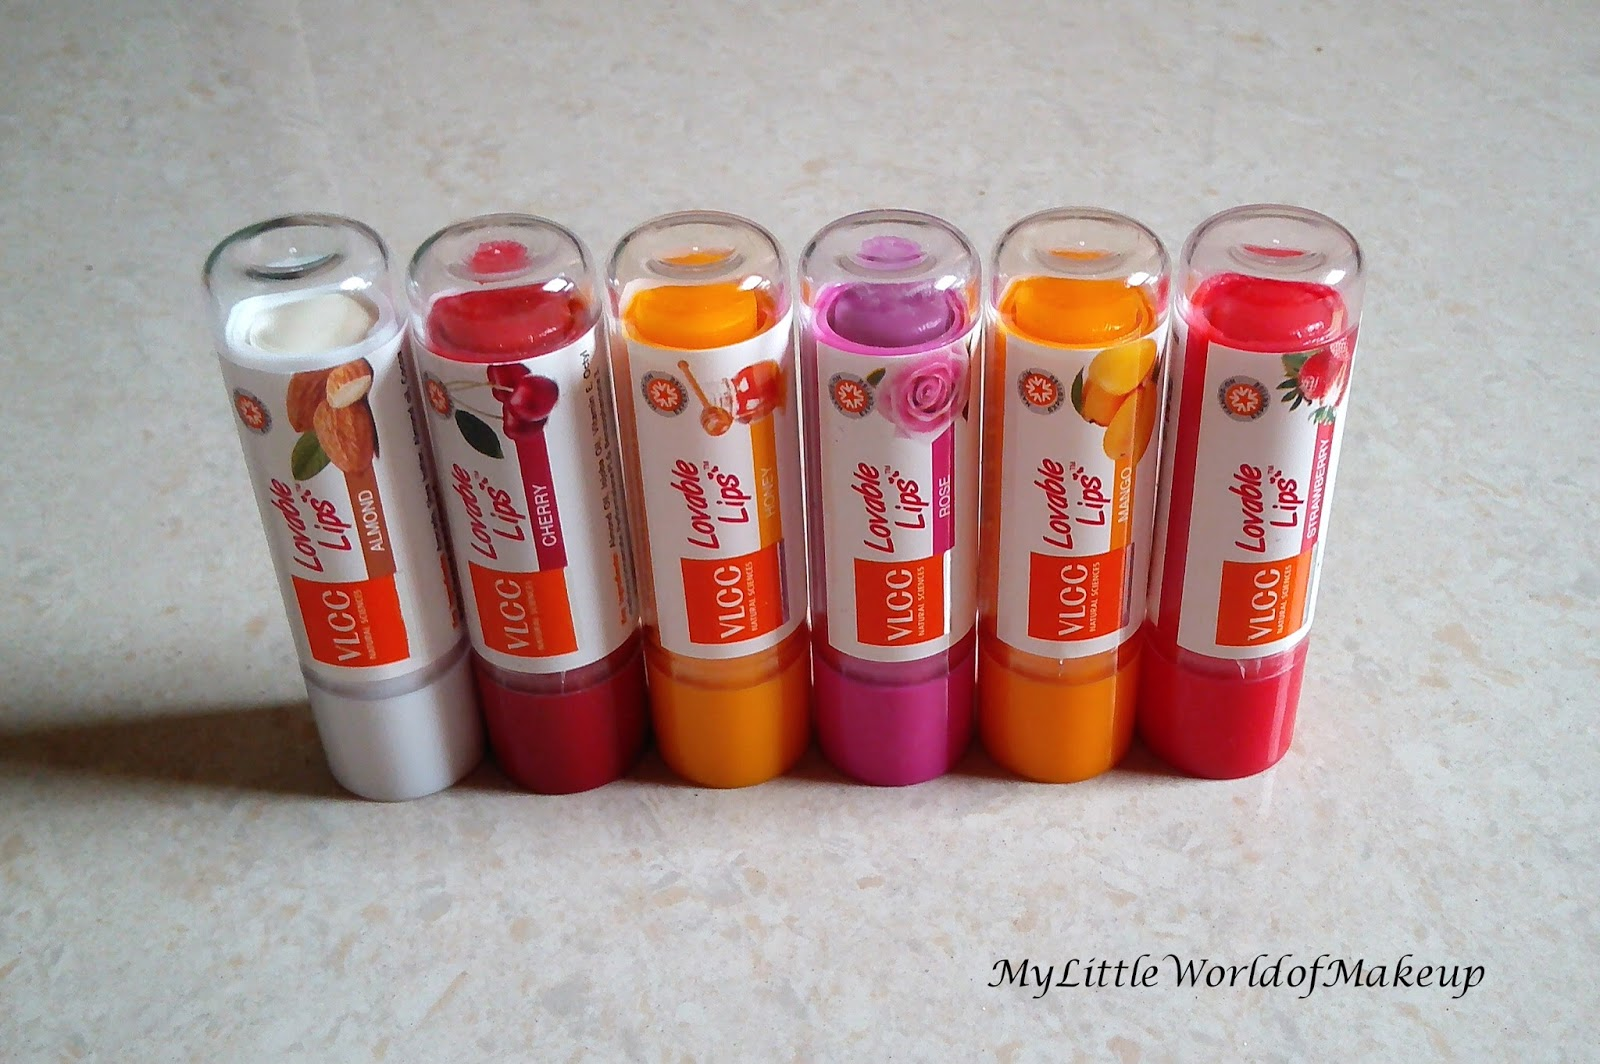 vlcc lovable lips lip balm review swatches